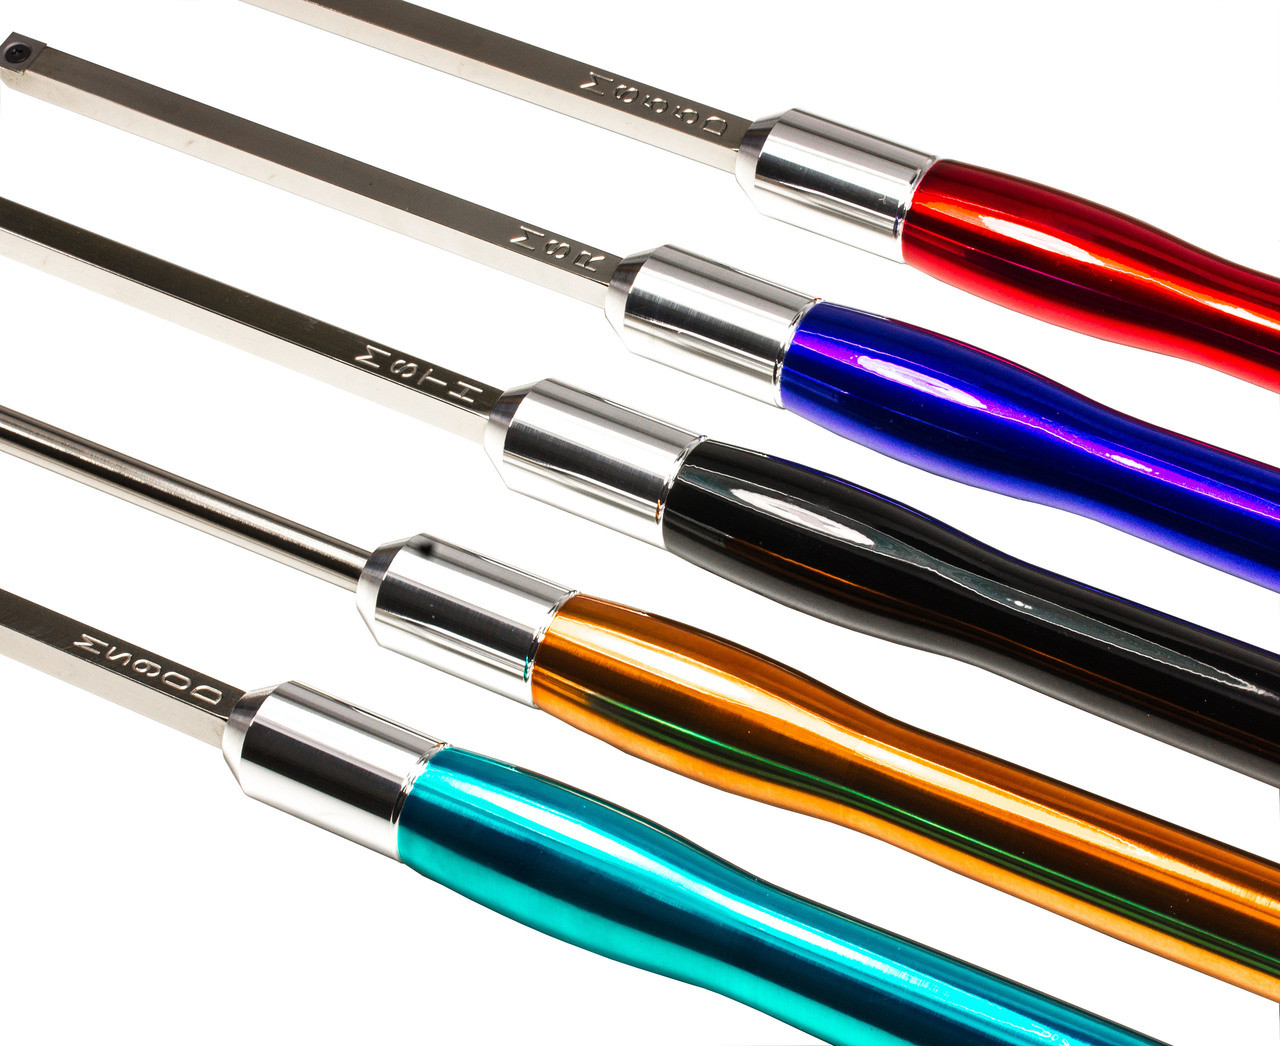 5 Tool Set of Carbide Lathe Tools with Handles